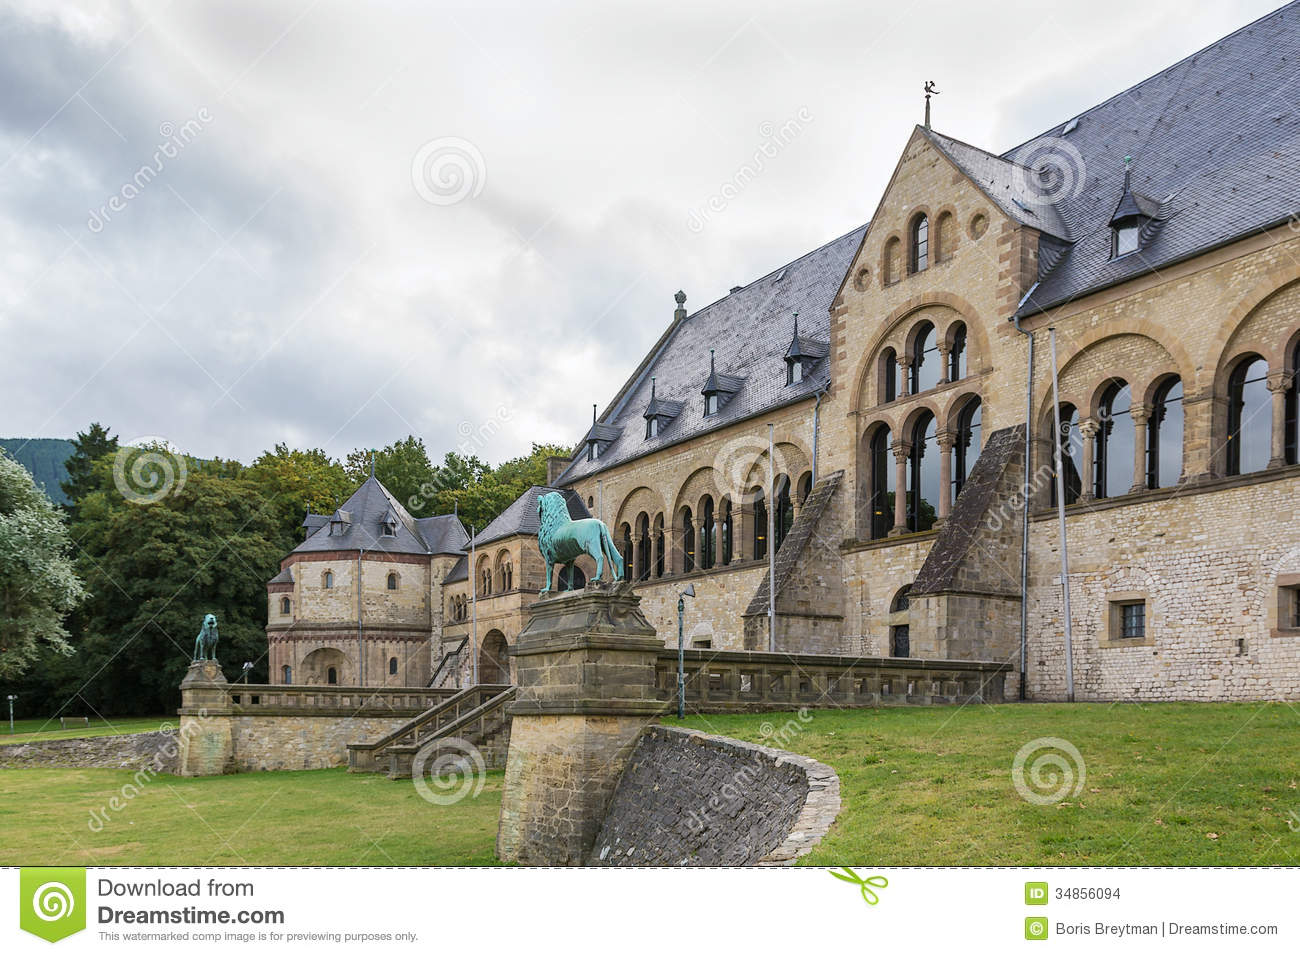 Goslar Germany  city pictures gallery : Mediaeval Imperial Palace In Goslar, Germany Stock Images Image ...